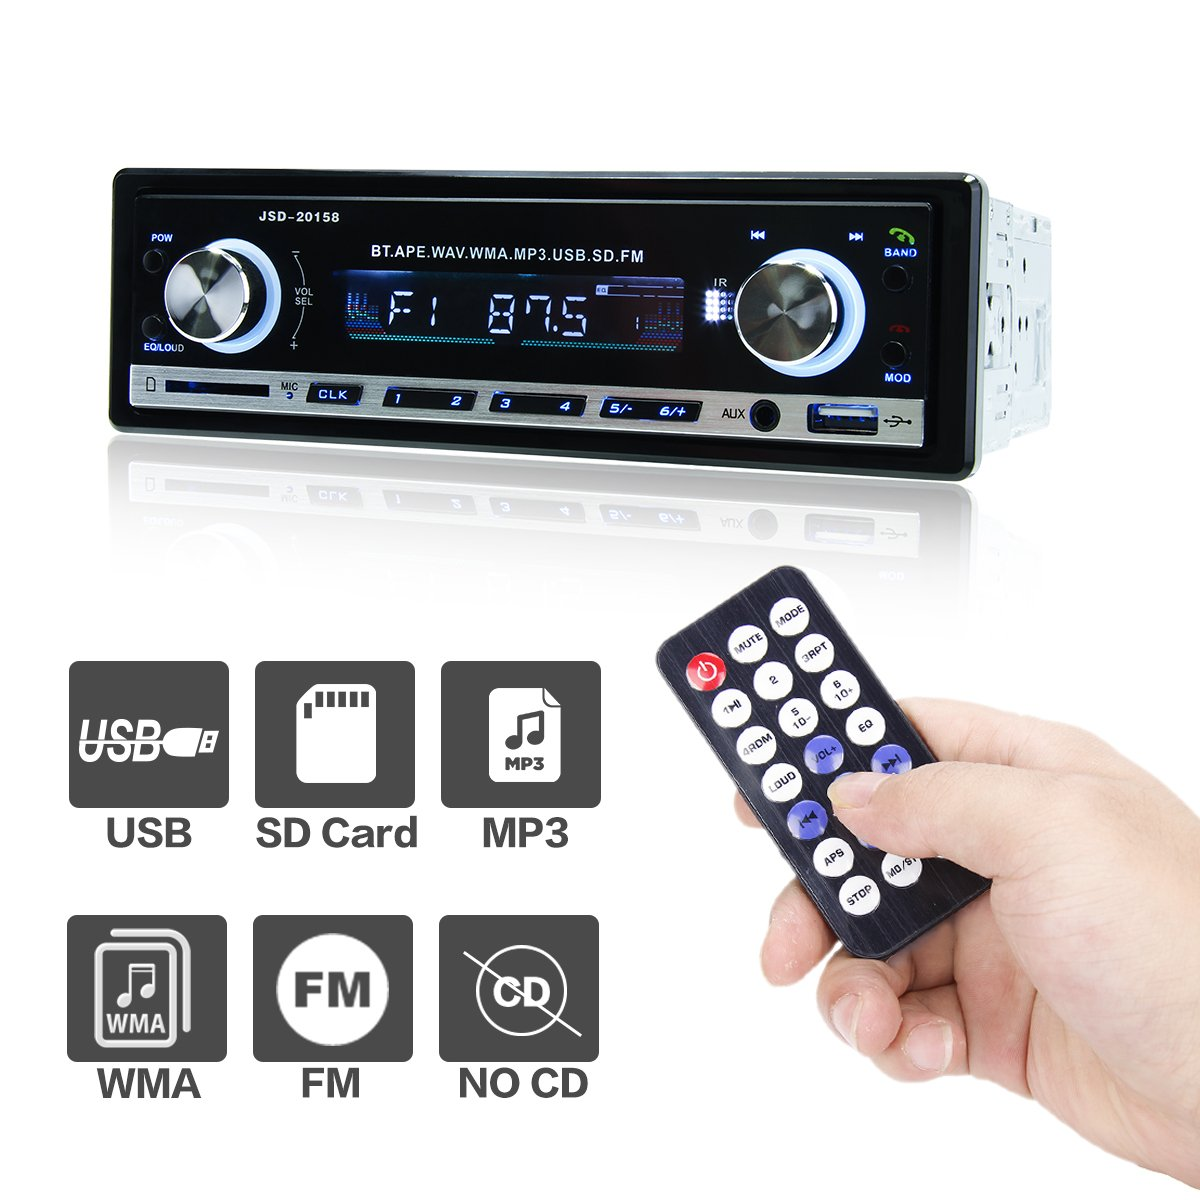 Bluetooth Car Stereo, POMILE Car MP3 Player Audio FM Receiver with Single-Din Version, USB Port & SD Card Slot AUX Receiver, with Wireless Remote Control